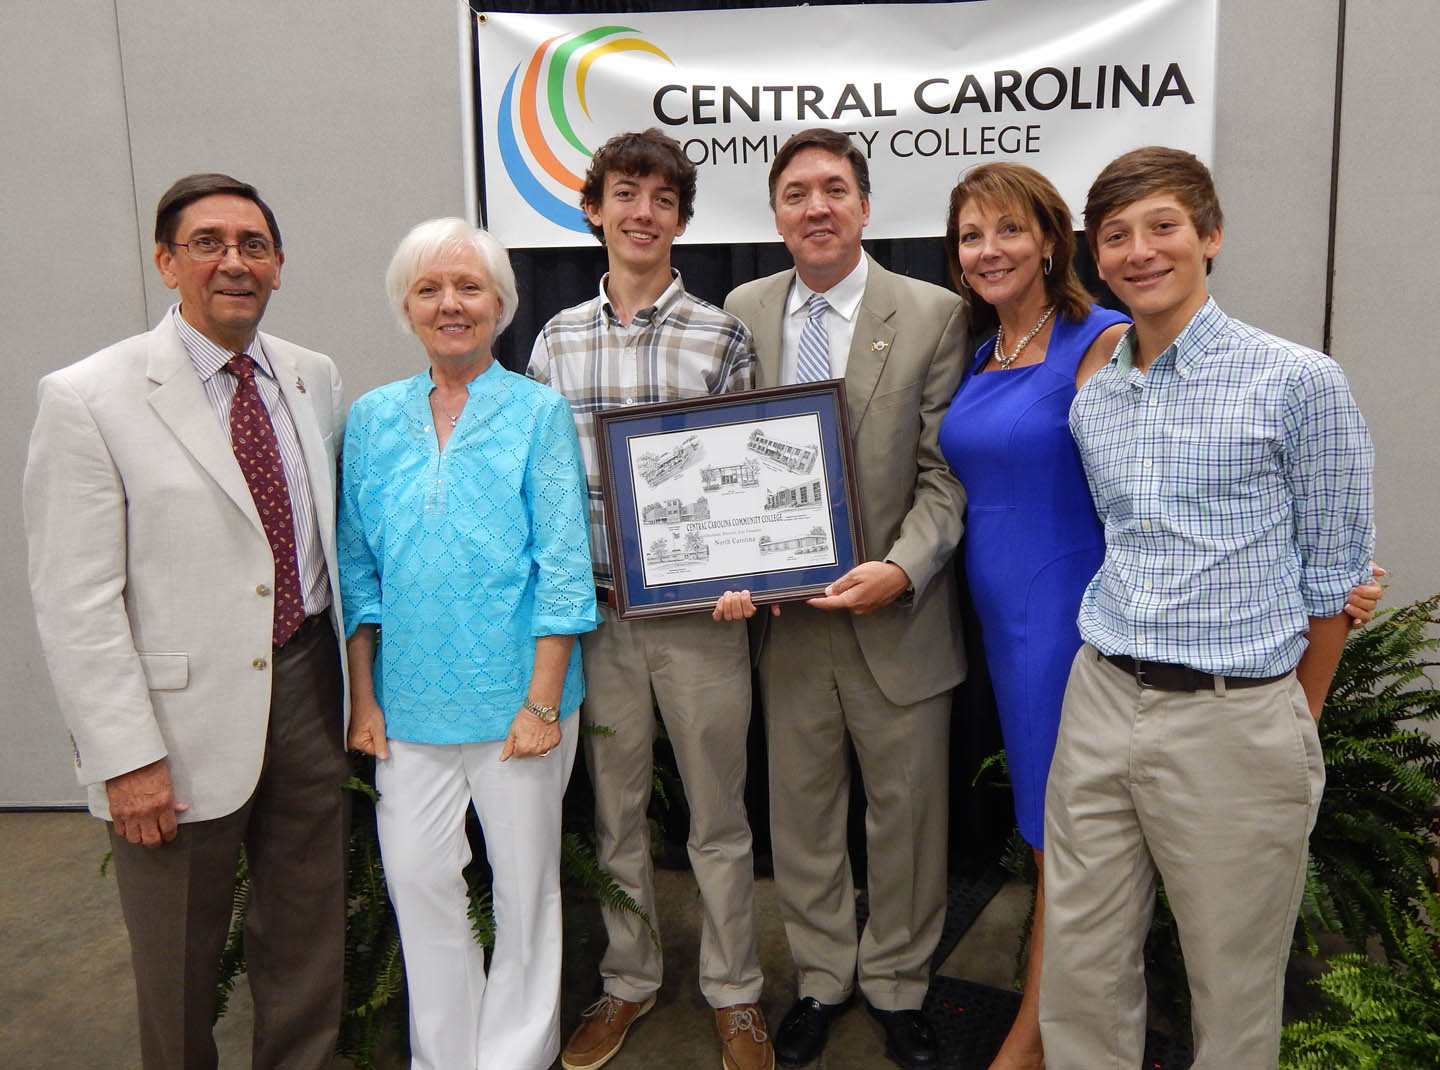 Click to enlarge,  The Central Carolina Community College Board of Trustees honored departing trustee Chet Mann at its July 23 meeting in the Dennis A. Wicker Civic Center. Mann had served on the board since 2010. He was elected mayor of Sanford in 2013. Pictured at the event are (from left) Mann's parents, Tommy Mann Jr. and his wife, Joyce Mann; son T.C. Mann; Chet Mann and wife, Missi Mann; and son Elliot Mann.Chet Mann holds a pen-and-ink drawing of college buildings by artist Jerry Miller, a gift from the board of trustees.